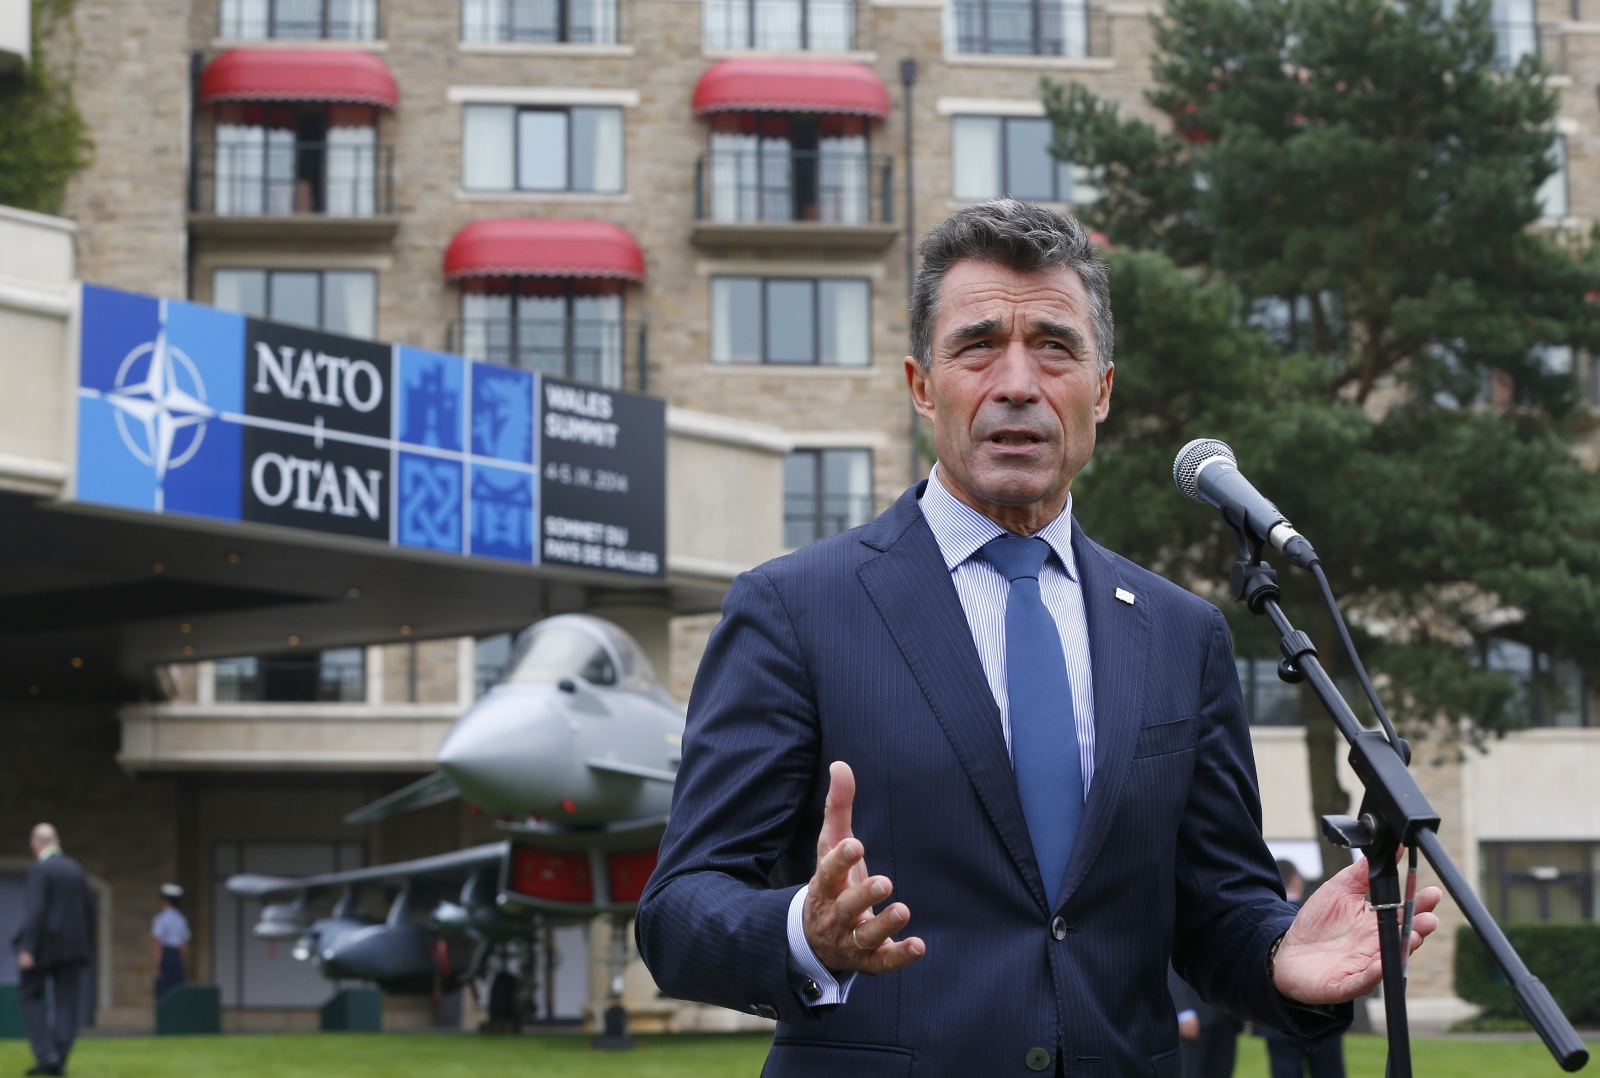 Nato Secretary-General Anders Fogh Rasmussen speaks to the media at the Celtic Manor resort, near Newport, in Wales September 4, 2014.